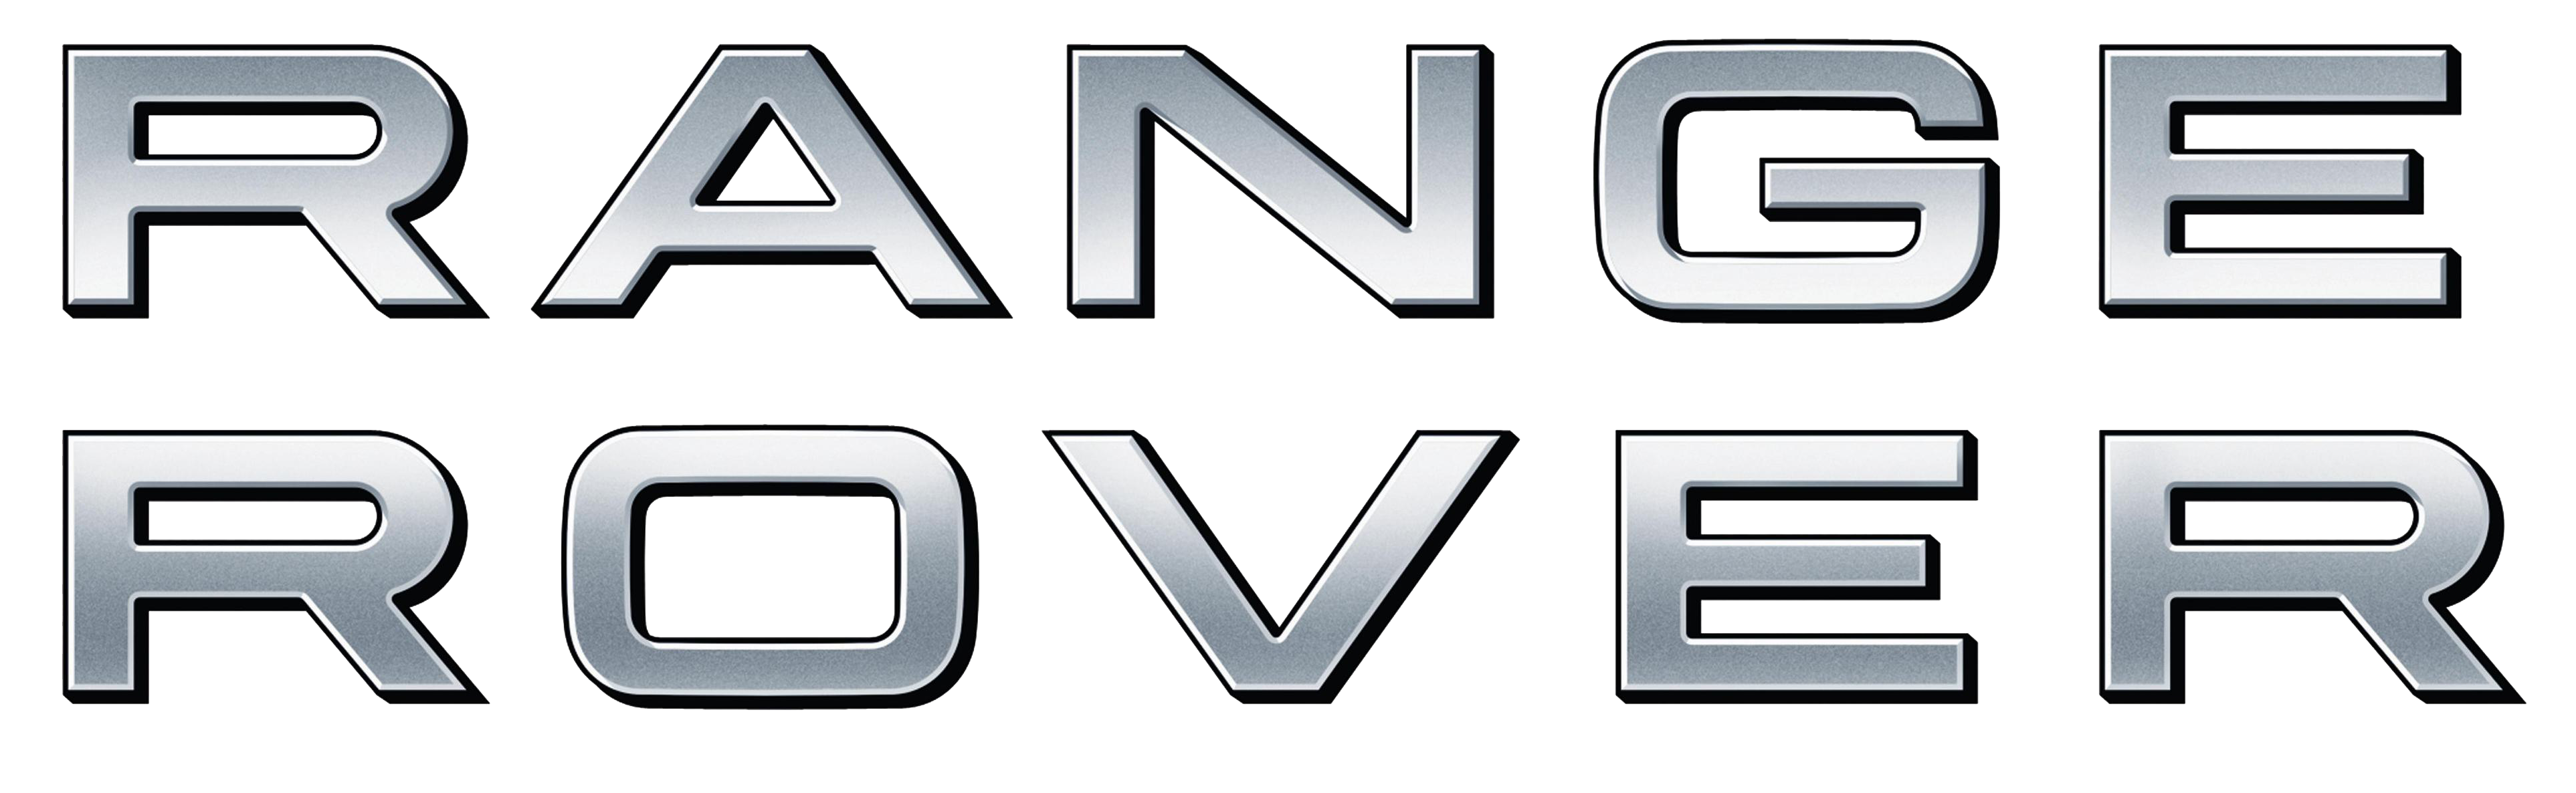 Land rover logo clipart clipart royalty free stock Image for Range Rover Logo Car Wallpaper Download | Menswear ... clipart royalty free stock